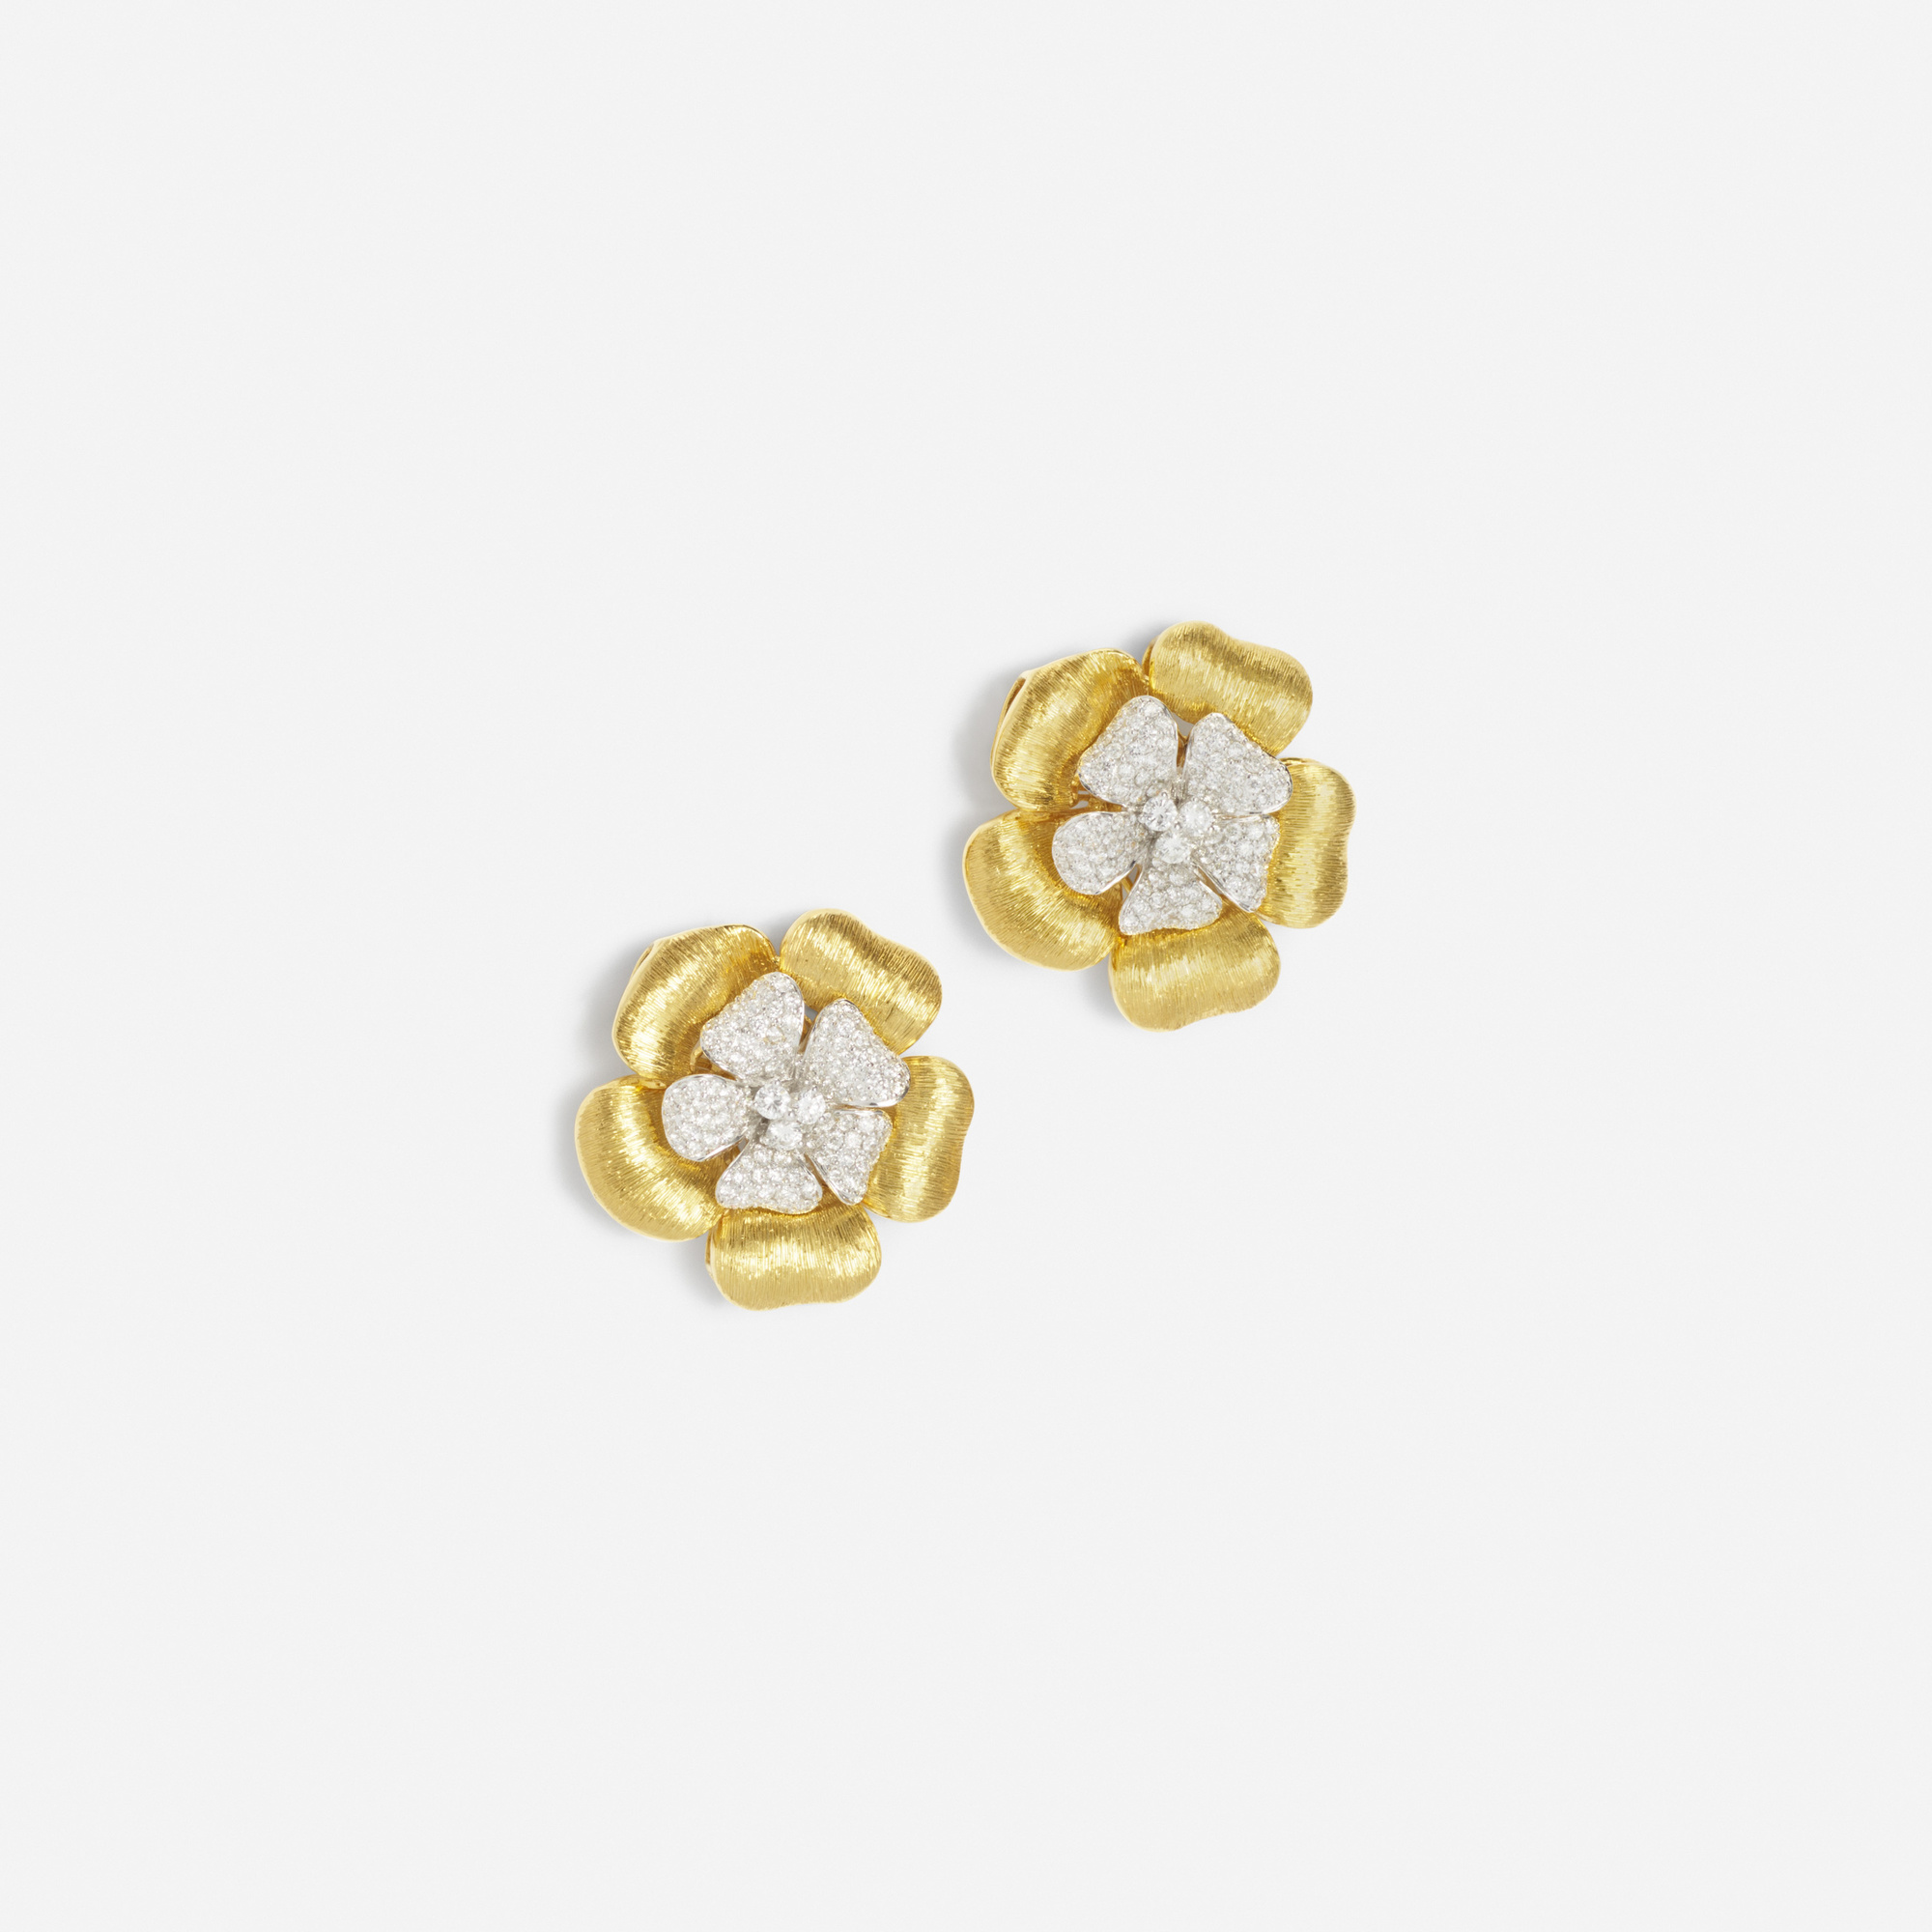 147:  / A pair of gold and diamond earrings (1 of 1)